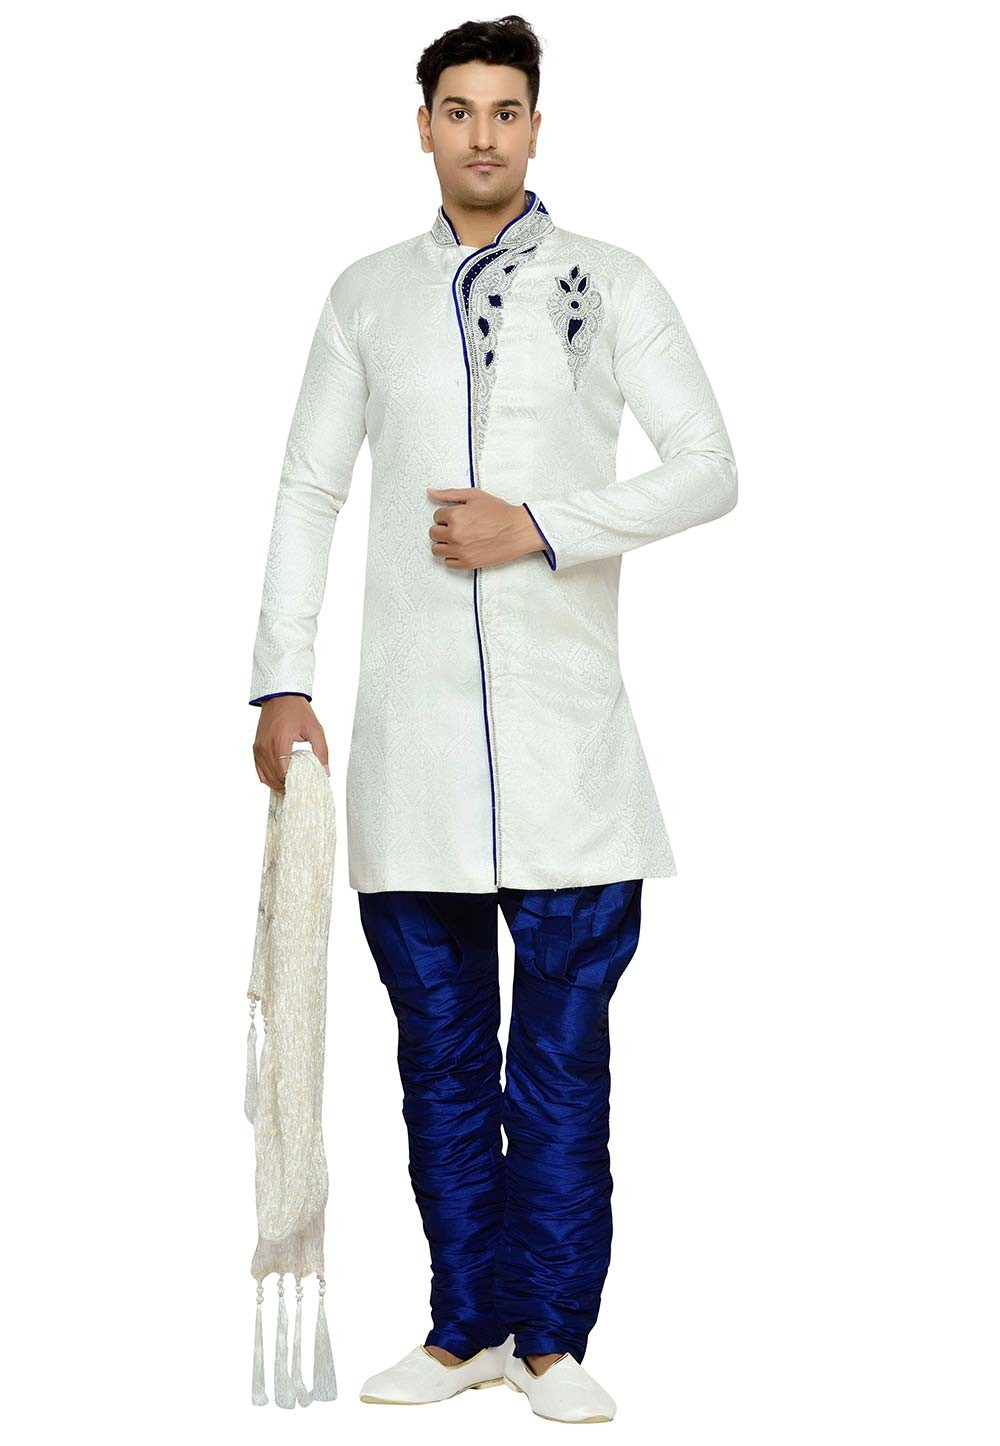 Off White Color Brocade Fabric Readymade Kurta Pyjama With Hand Work.